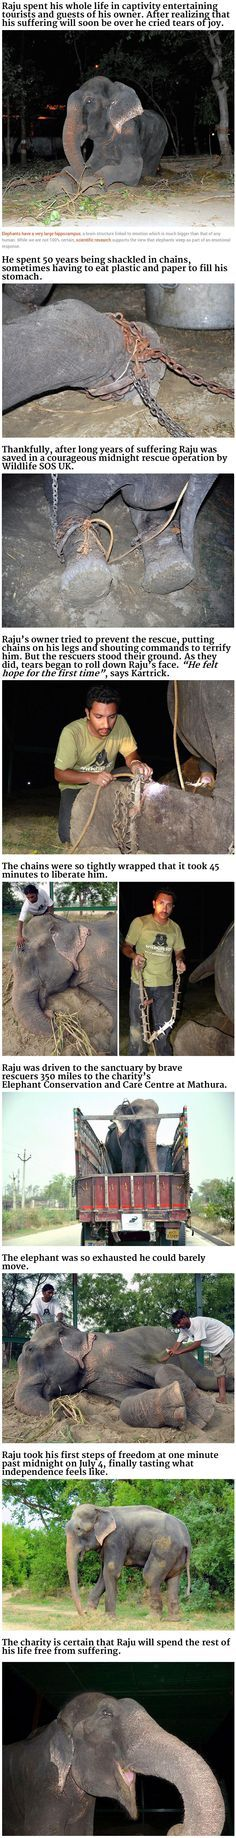 Elephant cries after being rescued from 50 years of suffering. - Imgur